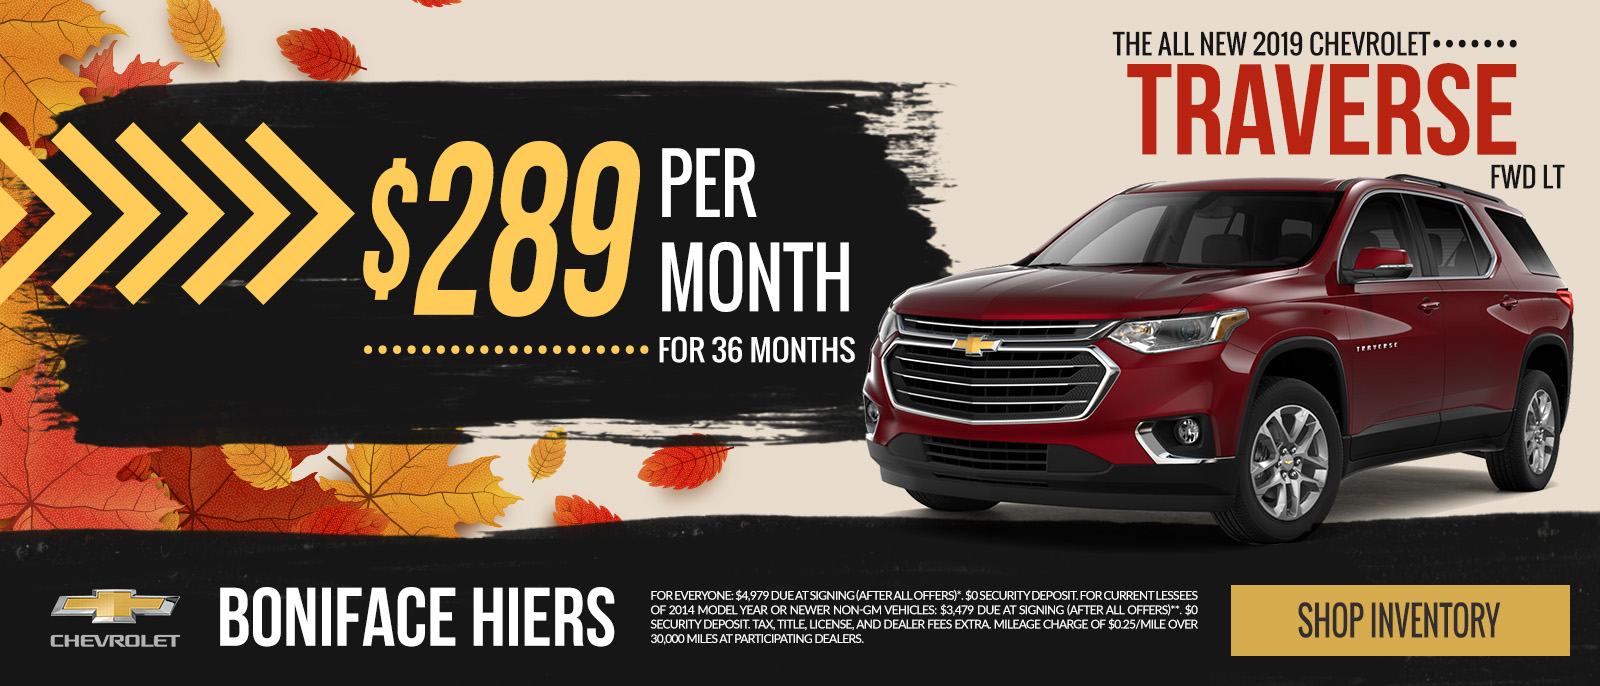 The All-New 2019 Chevy Traverse $0 Down or $299 a month. See Dealer For Full Details.